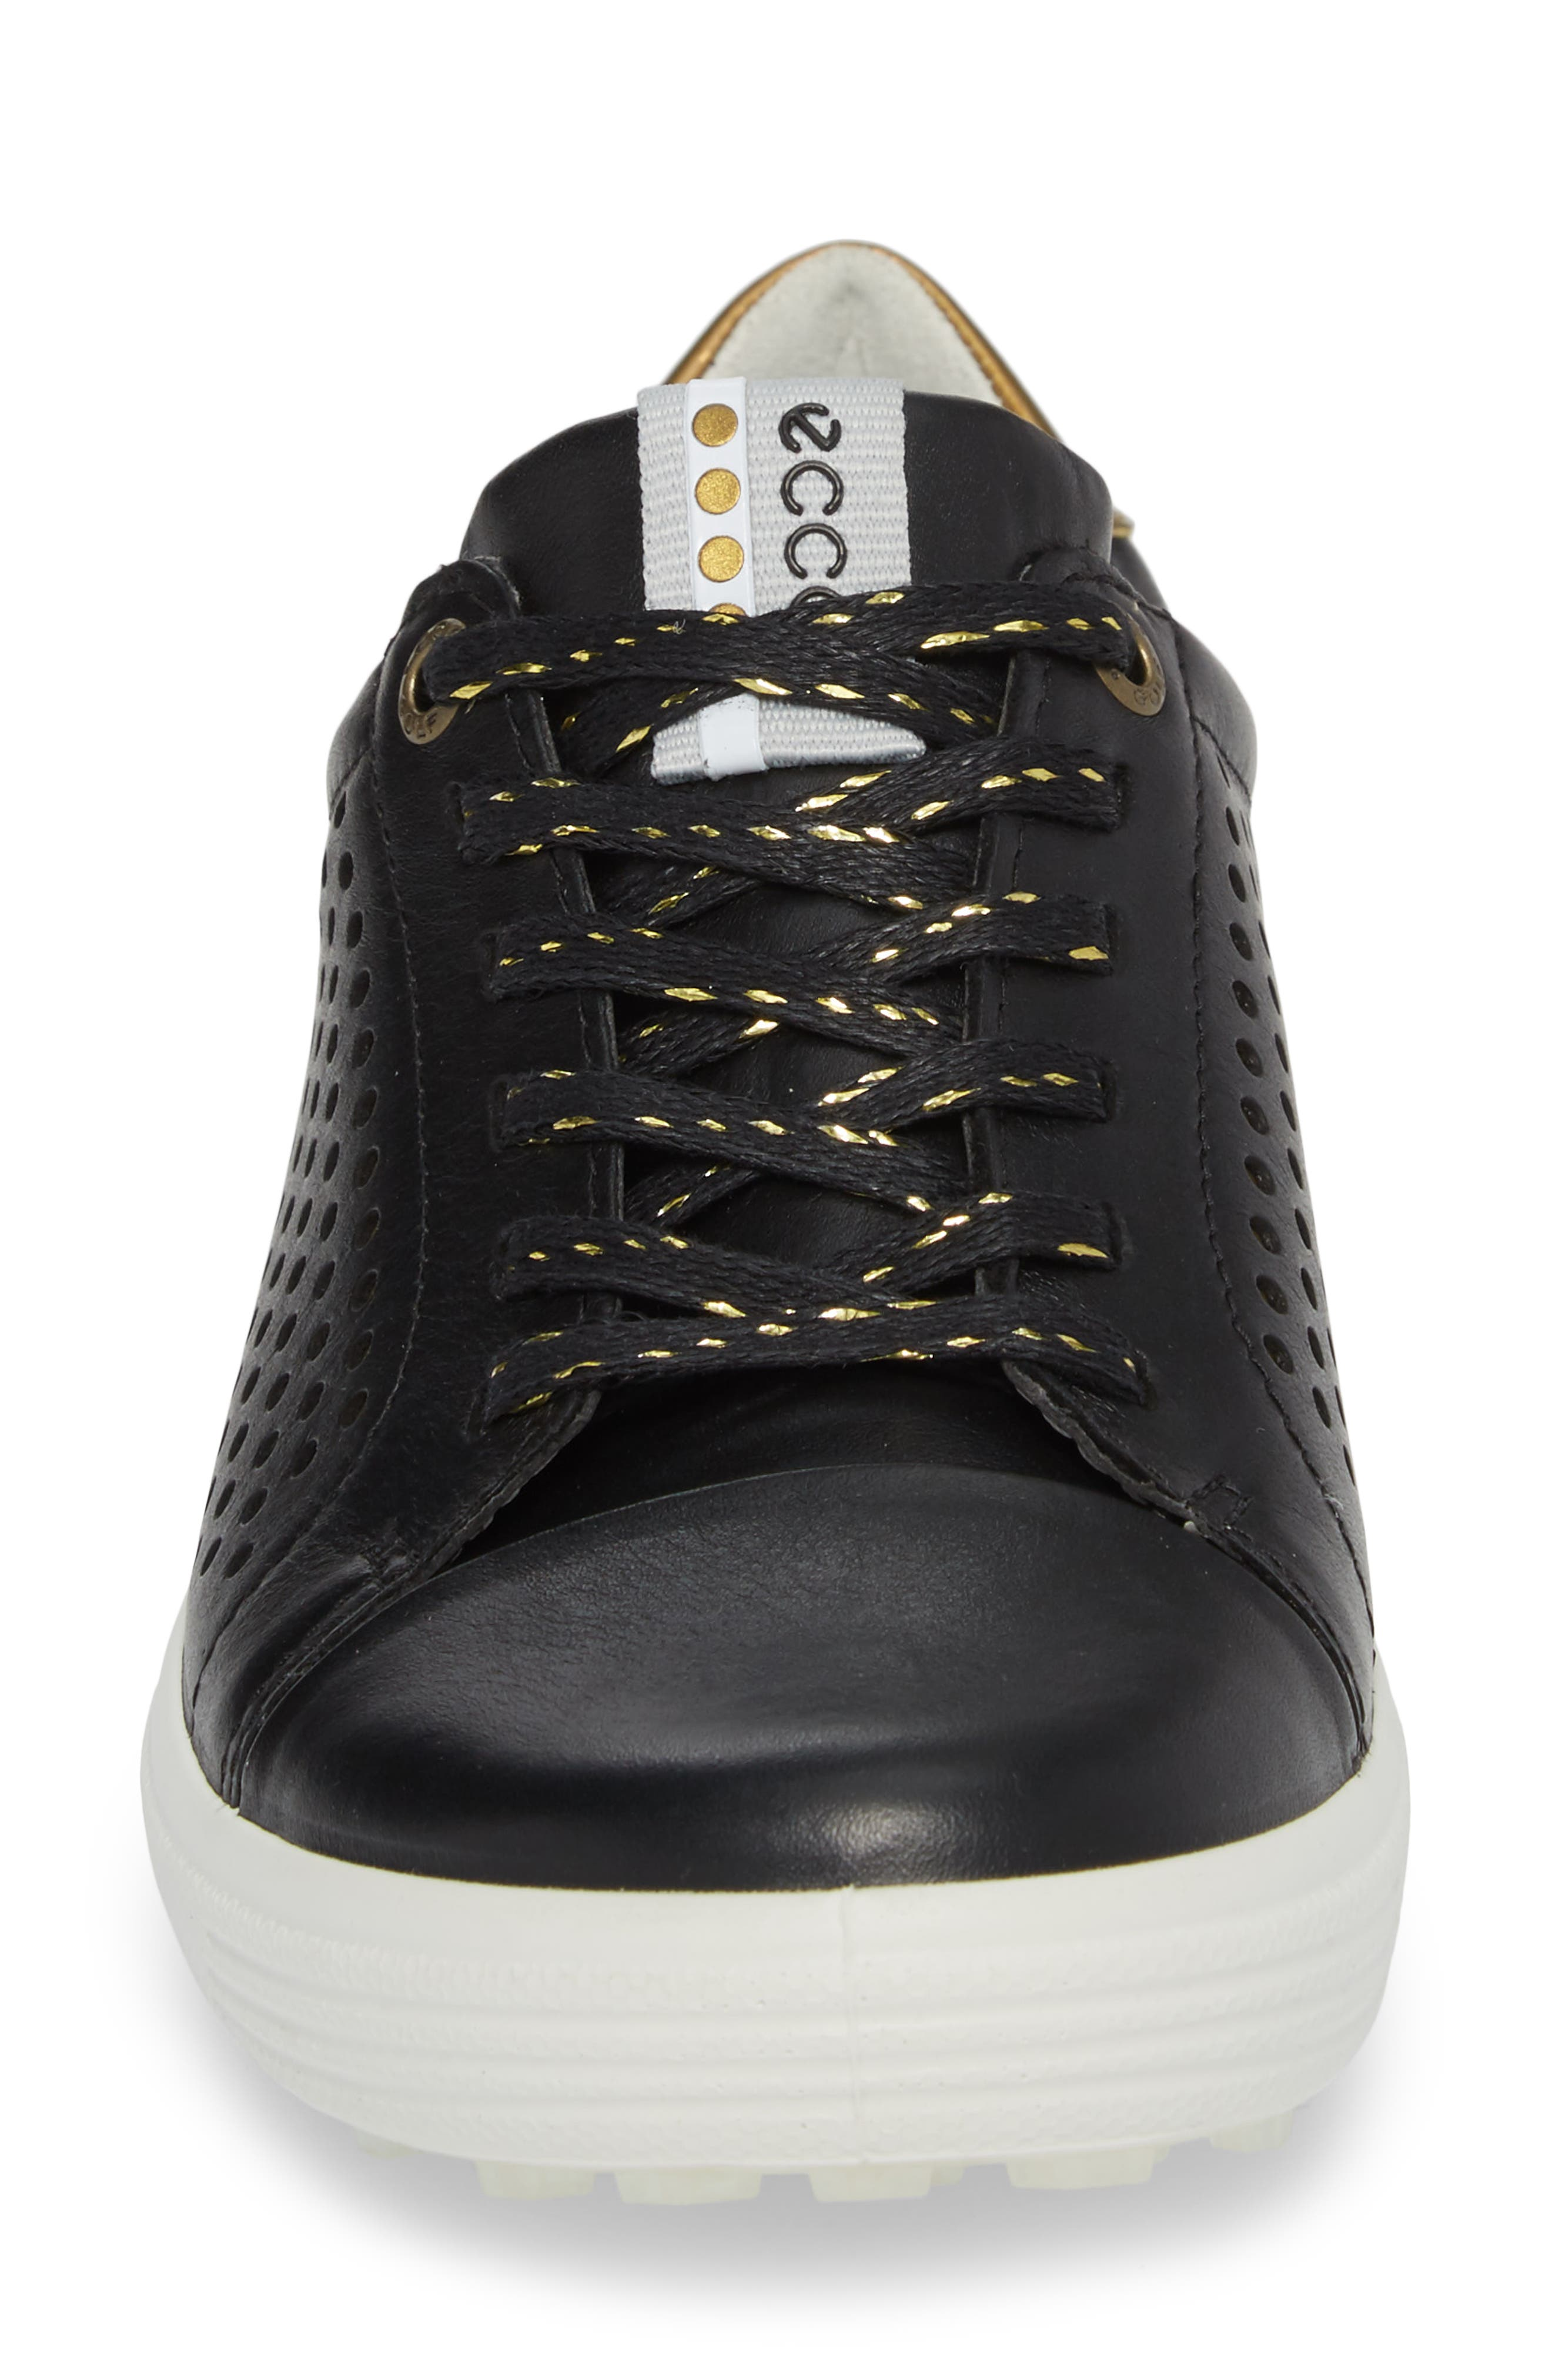 Casual Hybrid Water-Repellent Golf Shoe,                             Alternate thumbnail 4, color,                             BLACK/ BLACK LEATHER